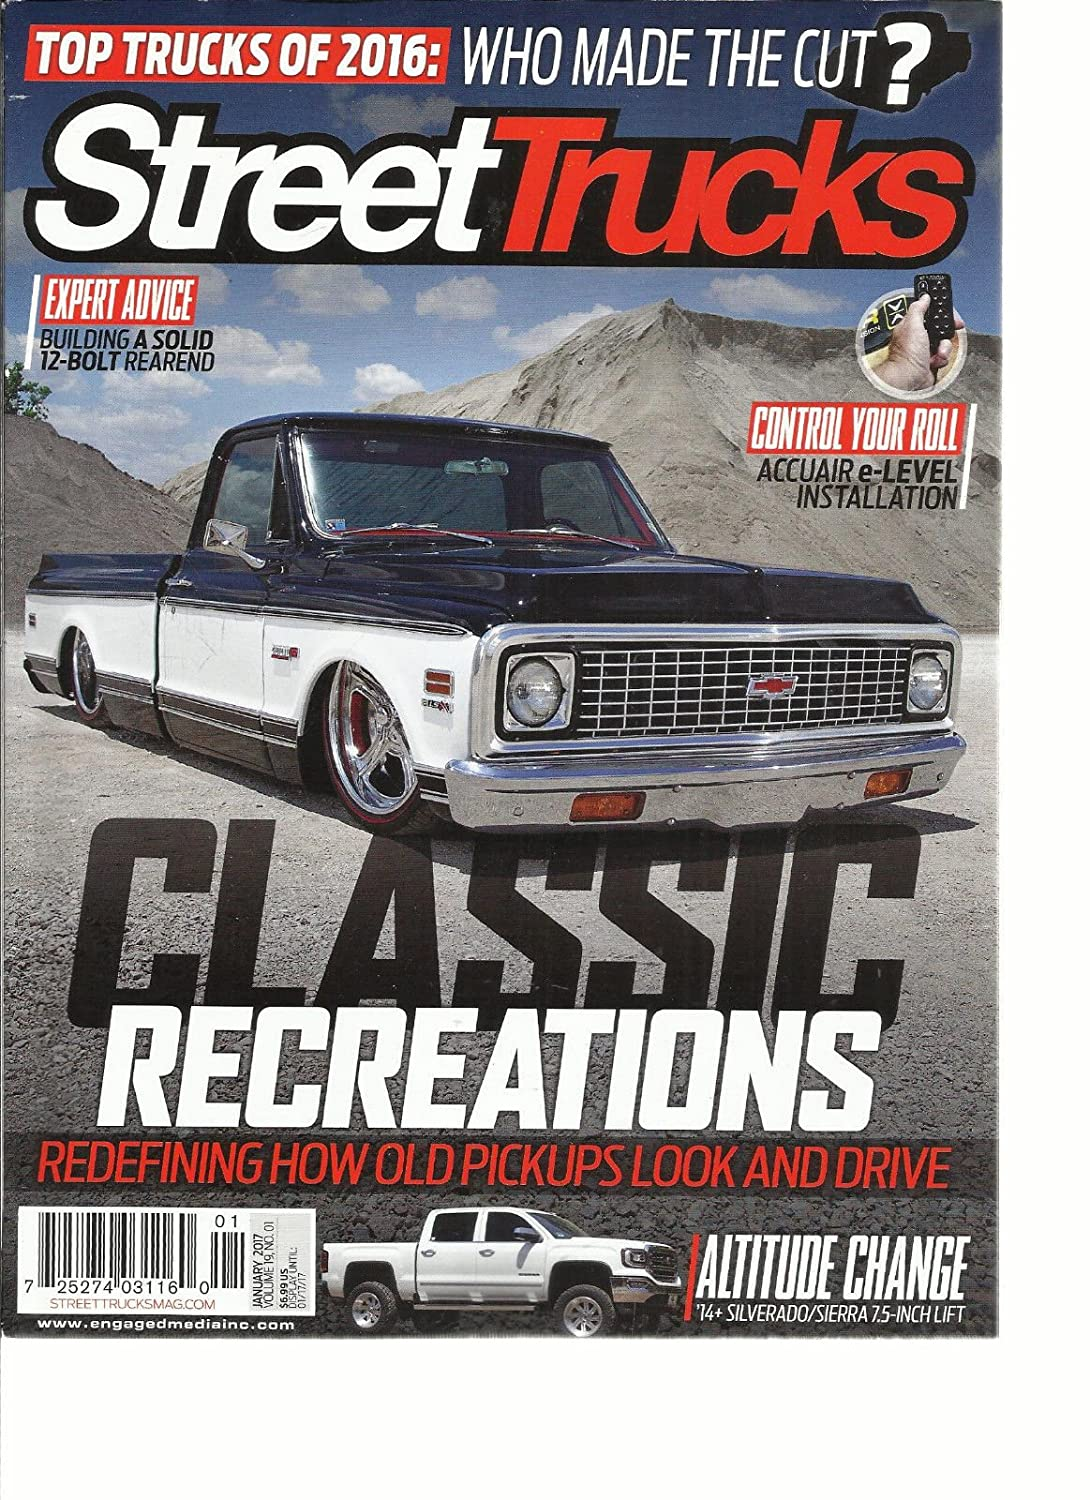 STREET TRUCKS MAGAZINE, JANUARY, 2017 TOP TRUCKS OF 2016 * WHO MADE THE CUT ? s3457